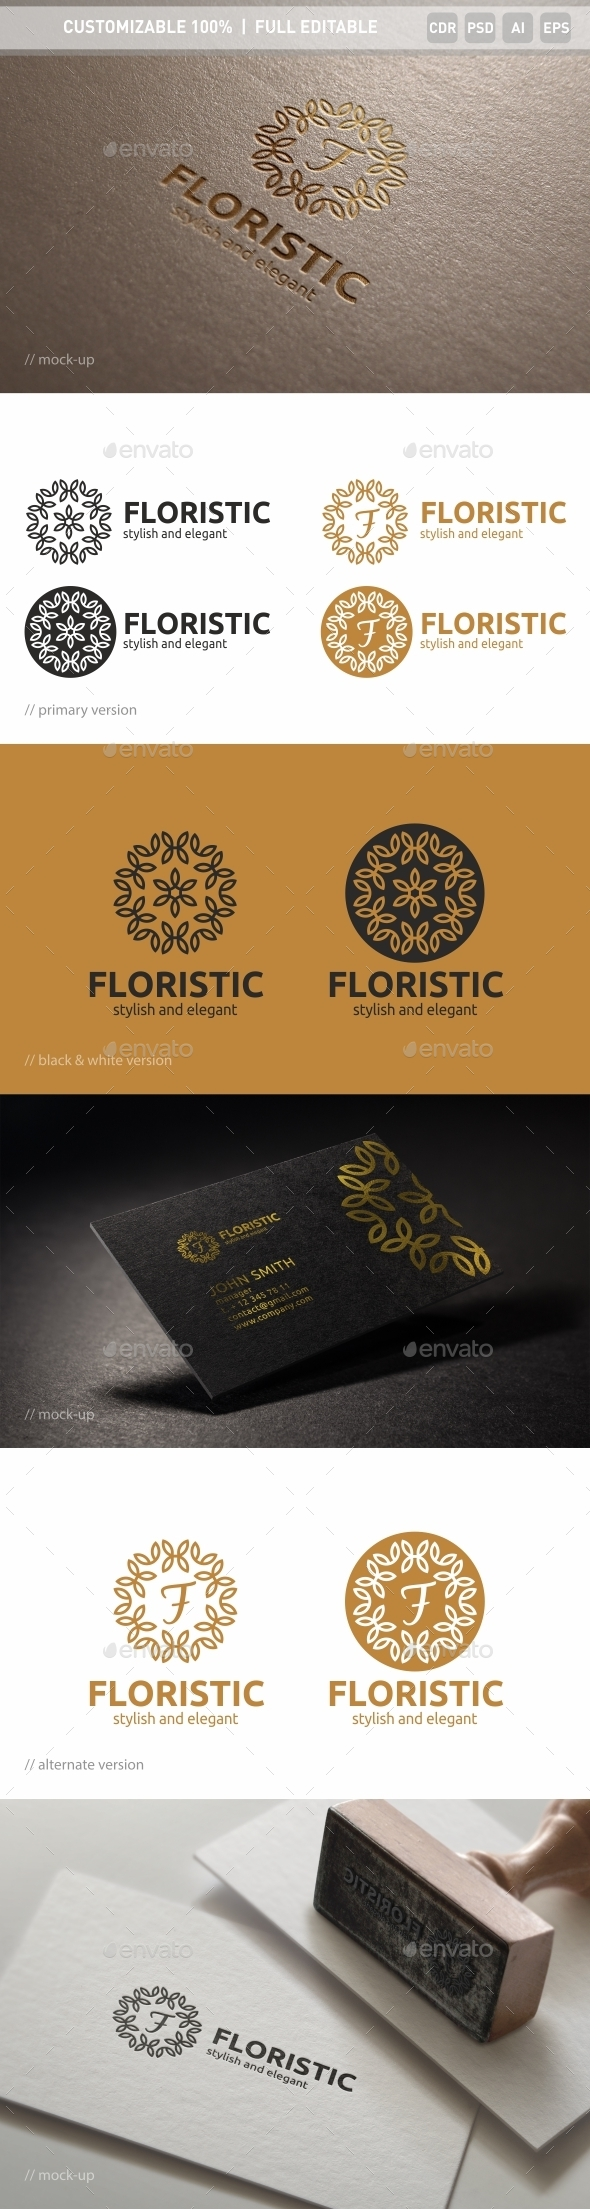 Floristic Logo Template - Objects Logo Templates